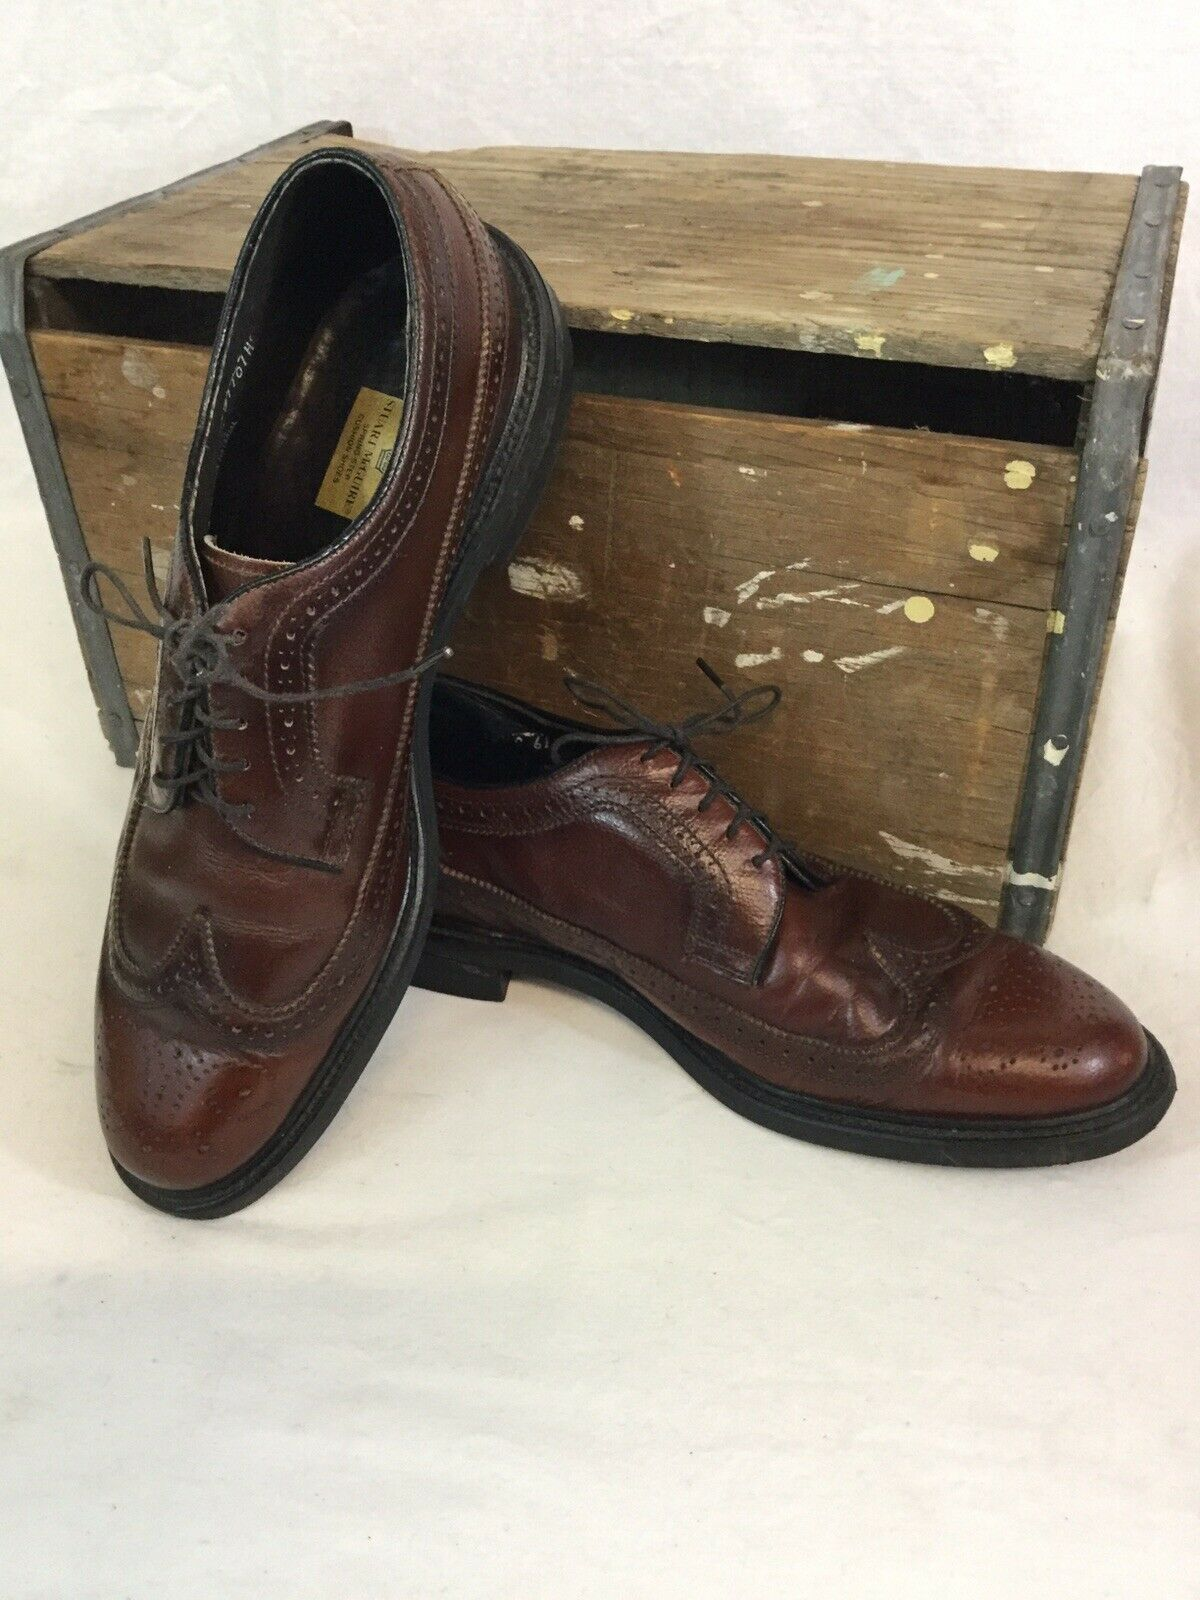 Men's Stuart McGuire Oxford Wing Tip Full Brogue Brown Leather shoes Size 10.5 C